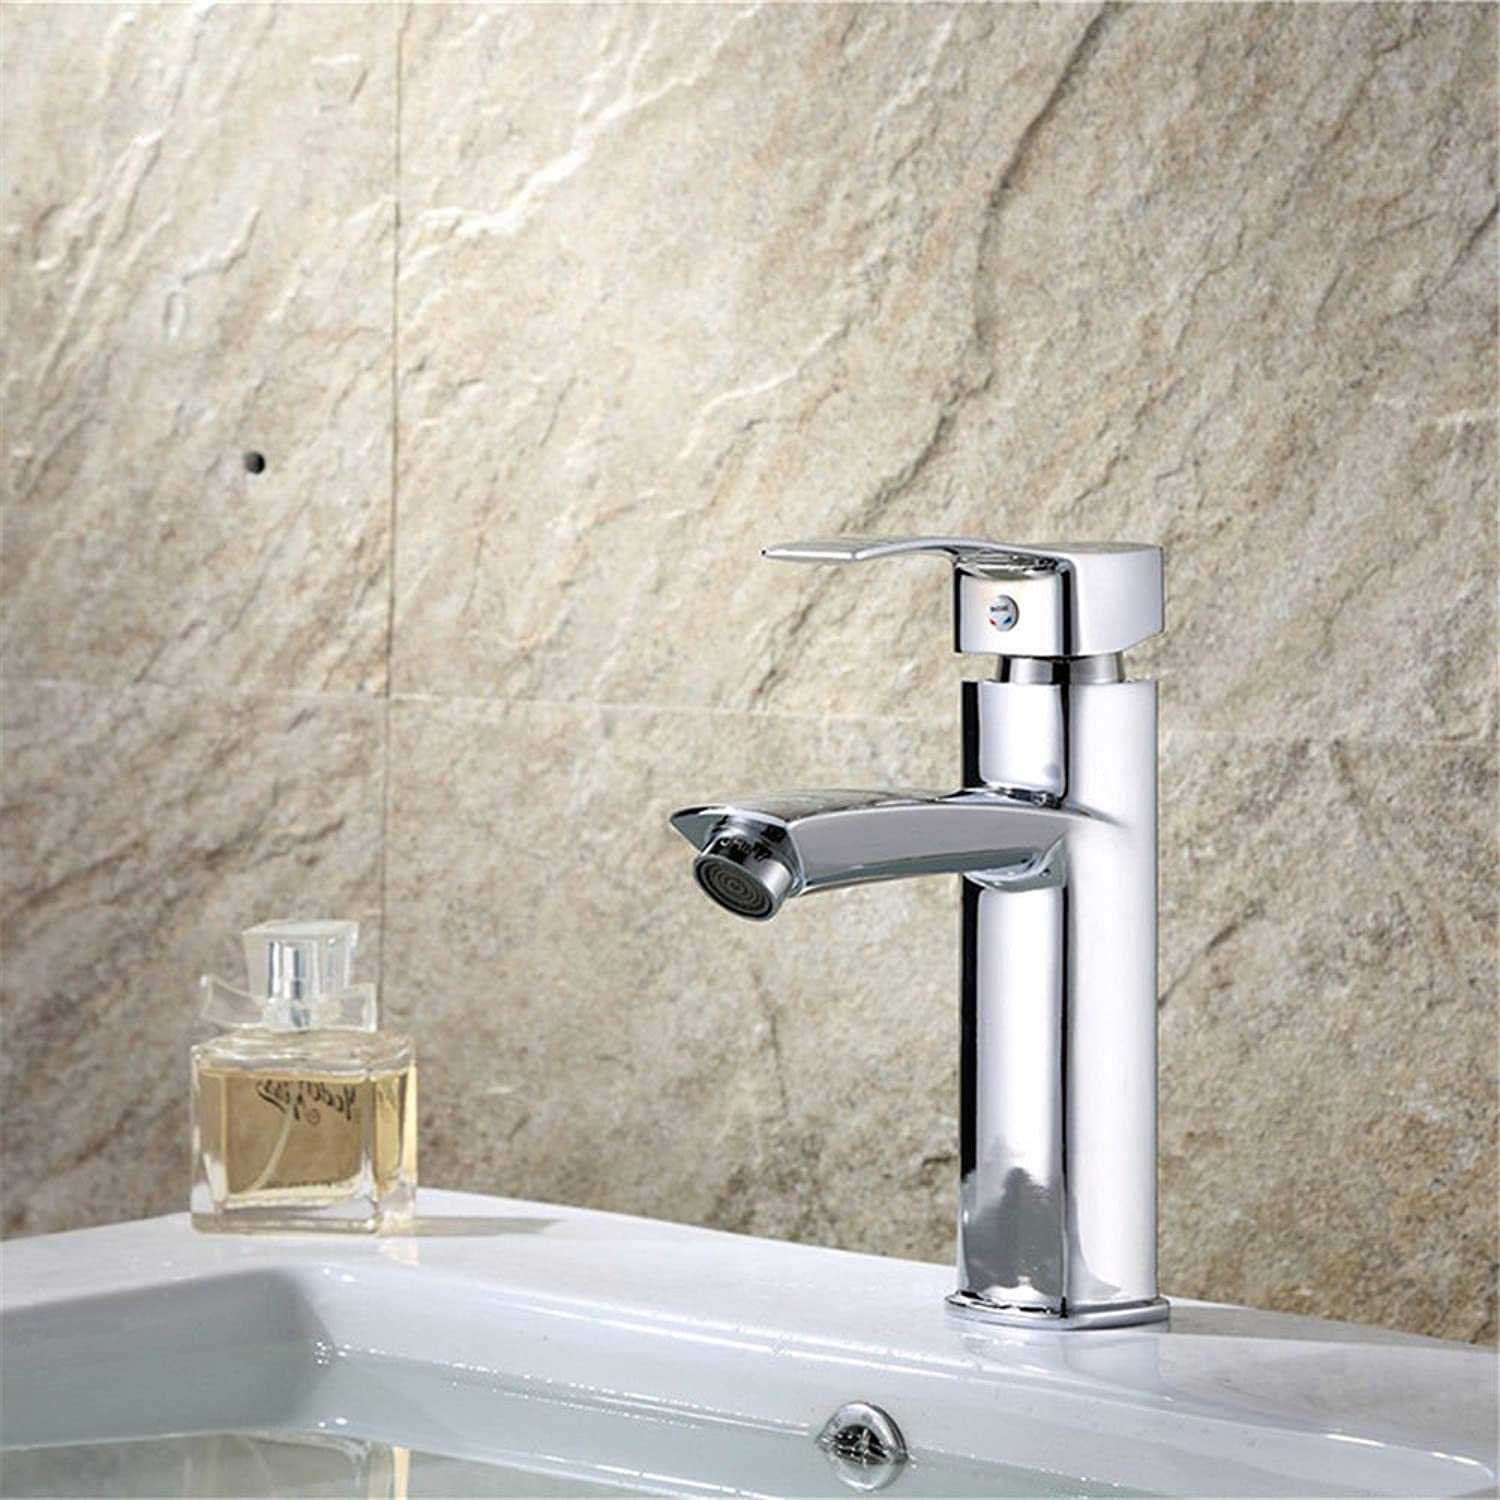 ETERNAL QUALITY Bathroom Sink Basin Tap Brass Mixer Tap Washroom Mixer Faucet Modern minimalist mix the water basin faucet single hole lowered basin mixer Kitchen Sink Ta